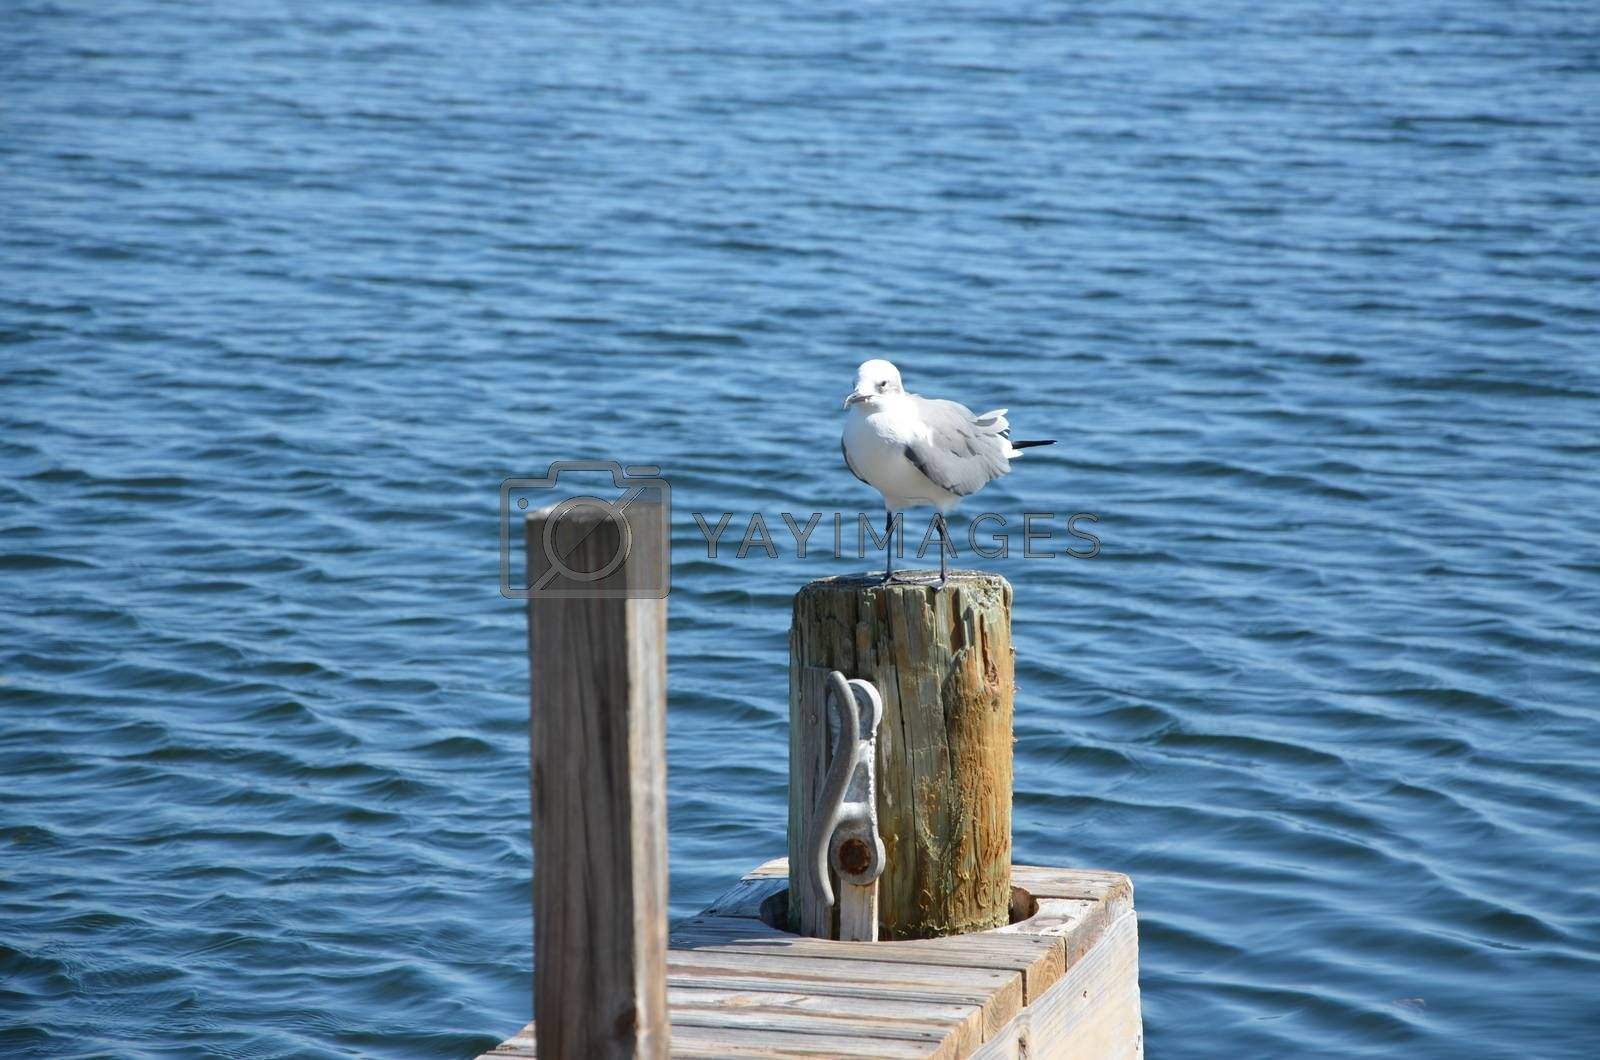 A seagull hanging out on the dock in the florida Keys